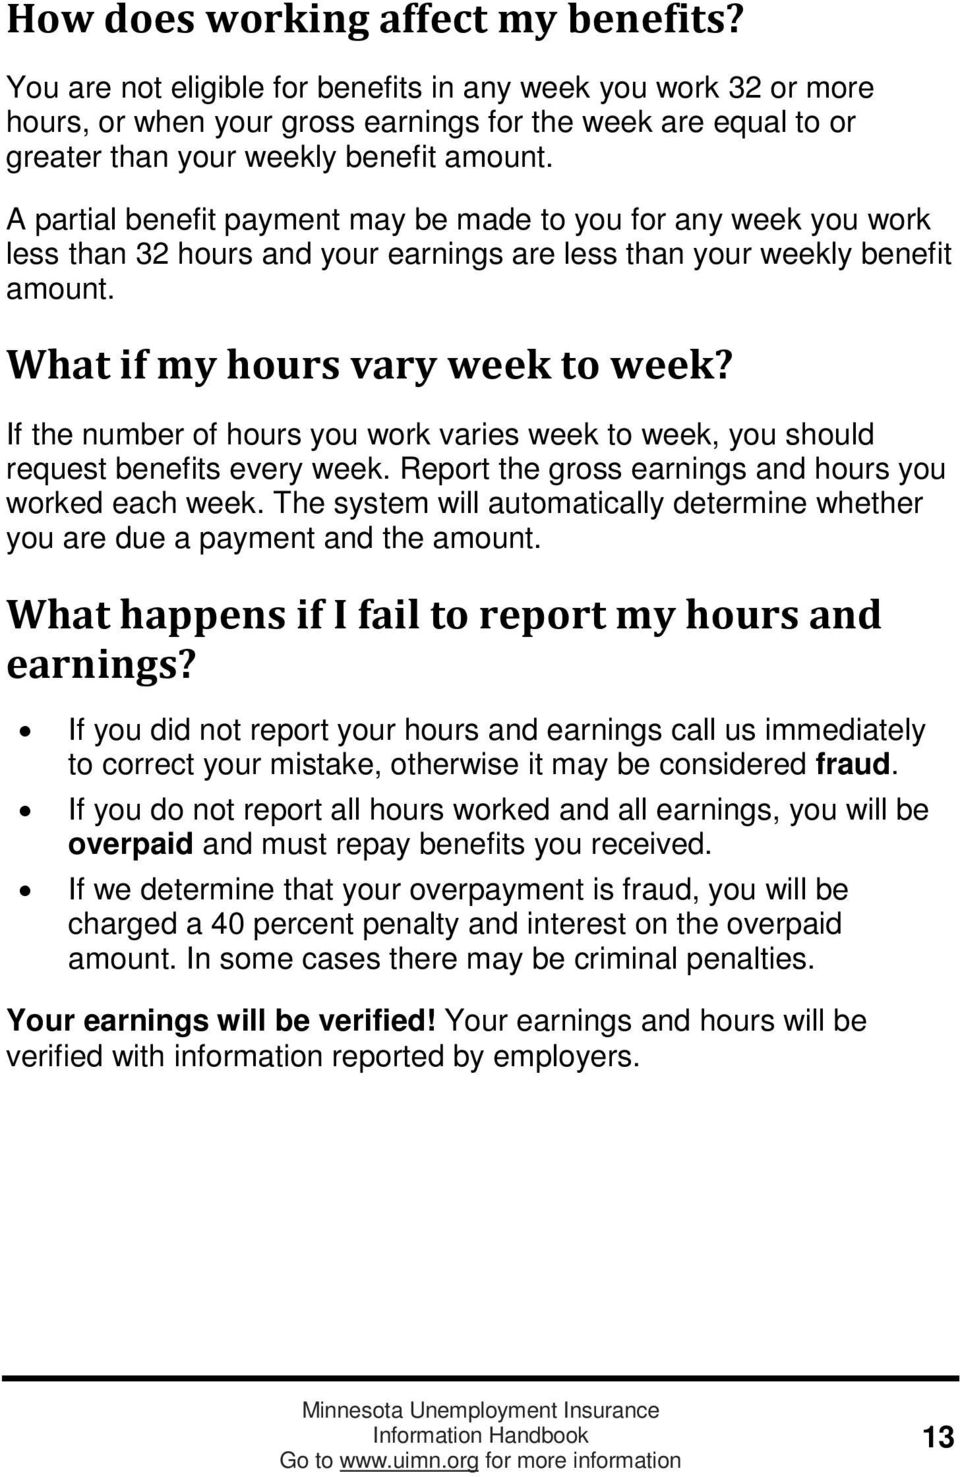 A partial benefit payment may be made to you for any week you work less than 32 hours and your earnings are less than your weekly benefit amount. What if my hours vary week to week?